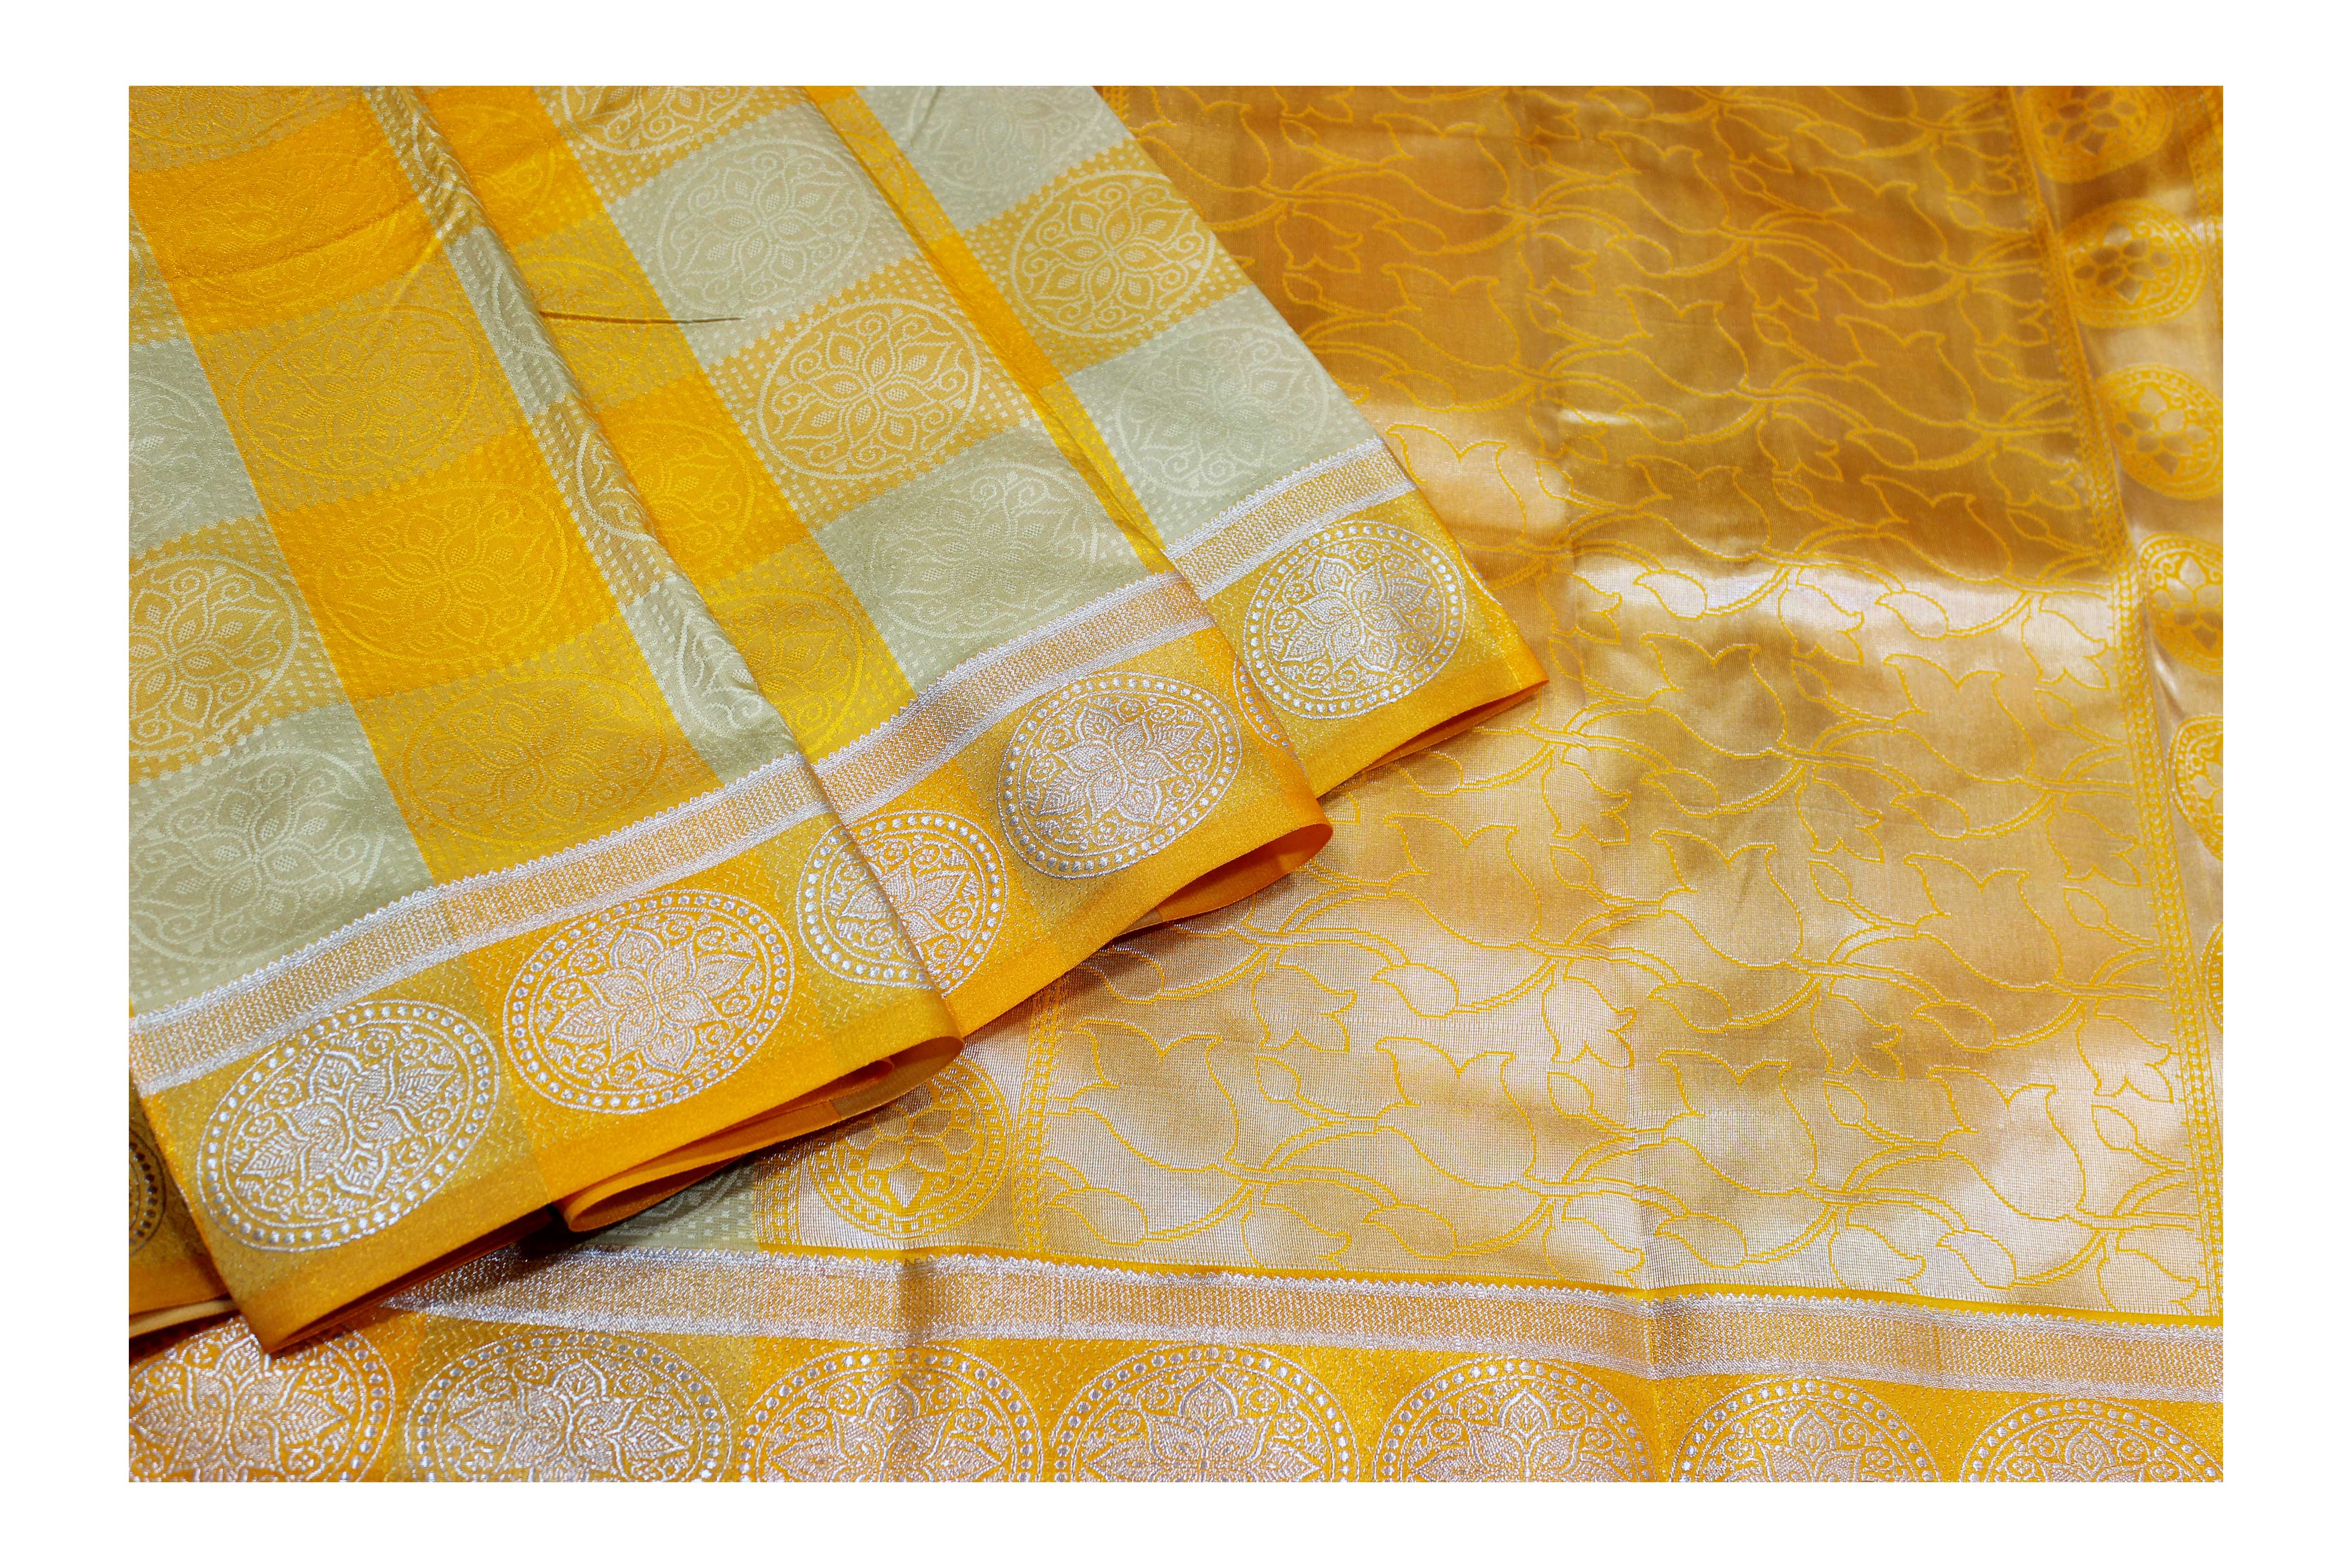 Mixture of yellow and pearl white saree with silver jari.